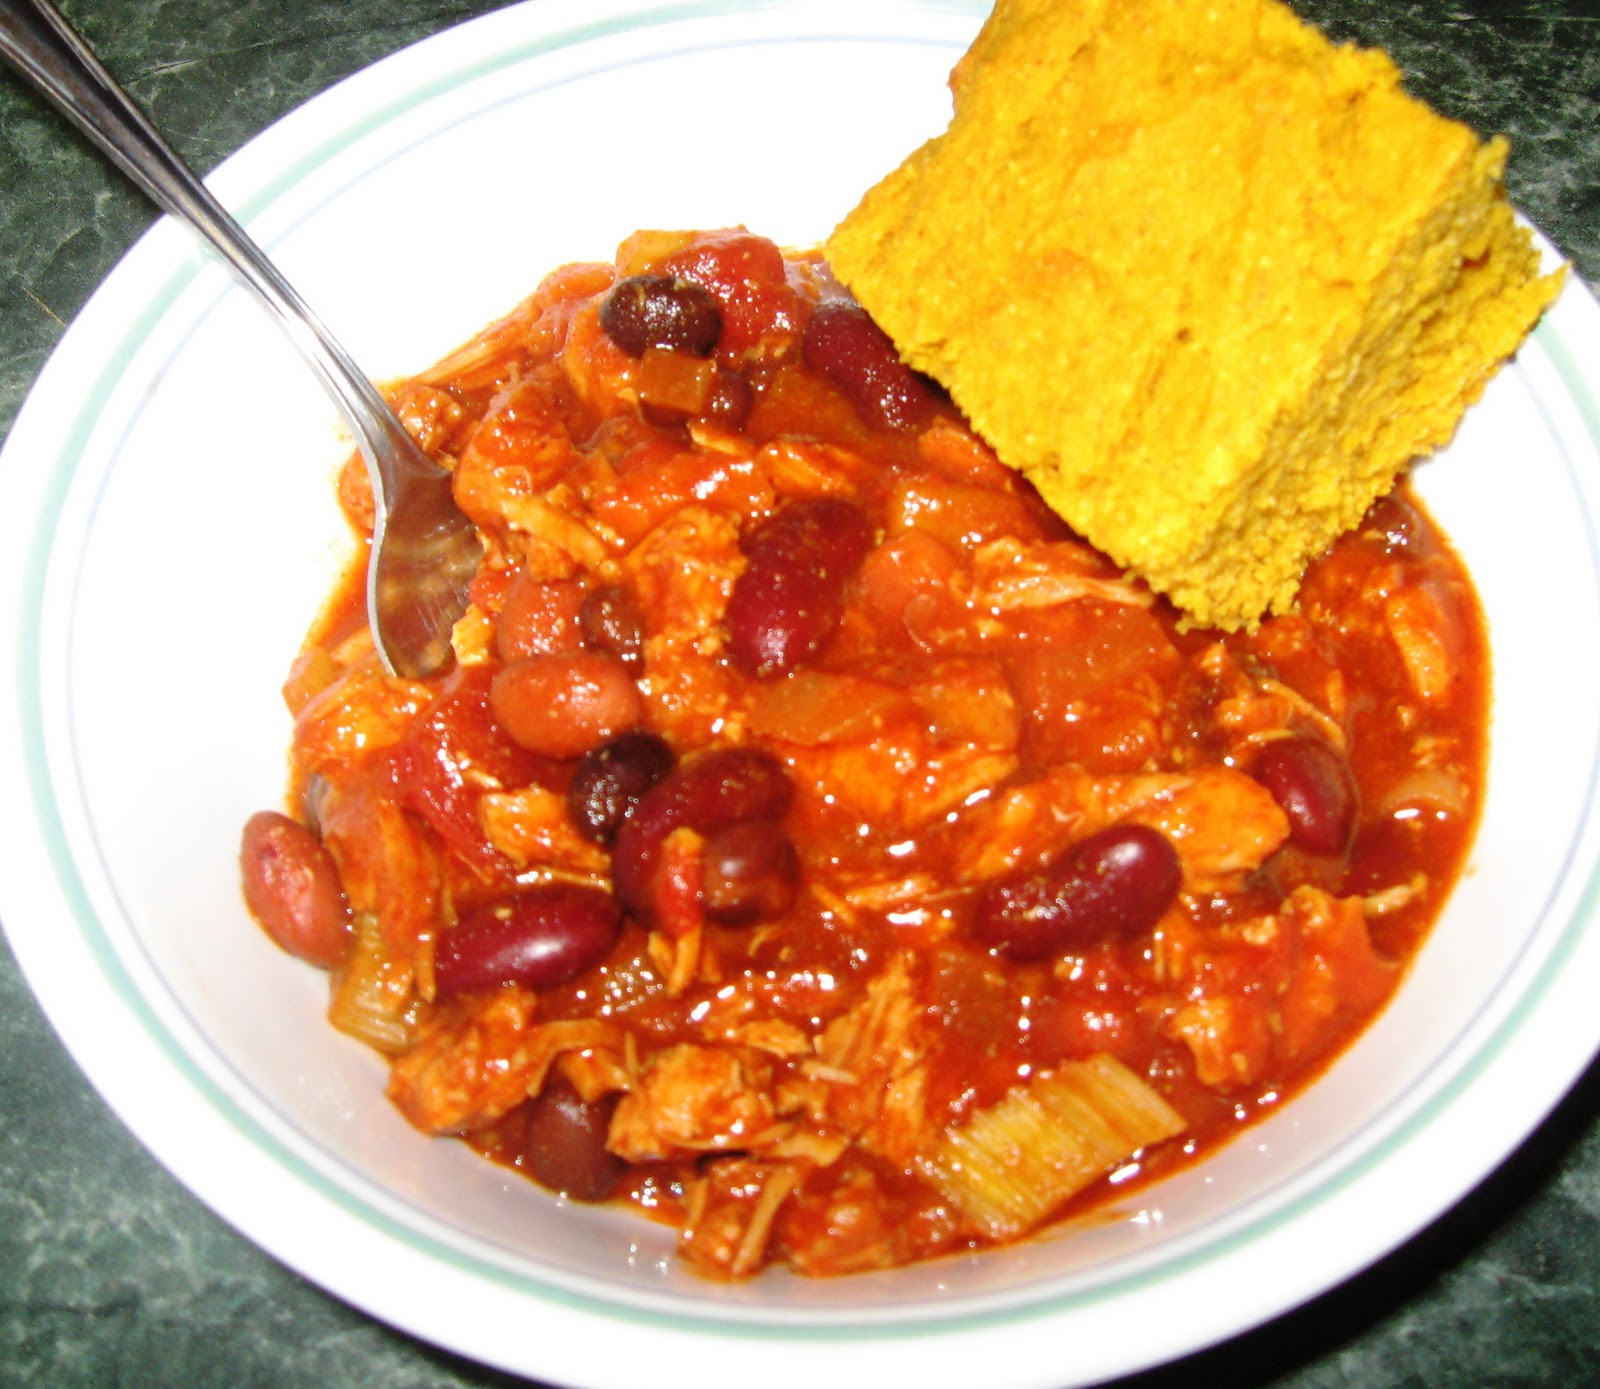 ... ... Healthy & Low Calorie: Buffalo Chicken Chili in the Slow Cooker